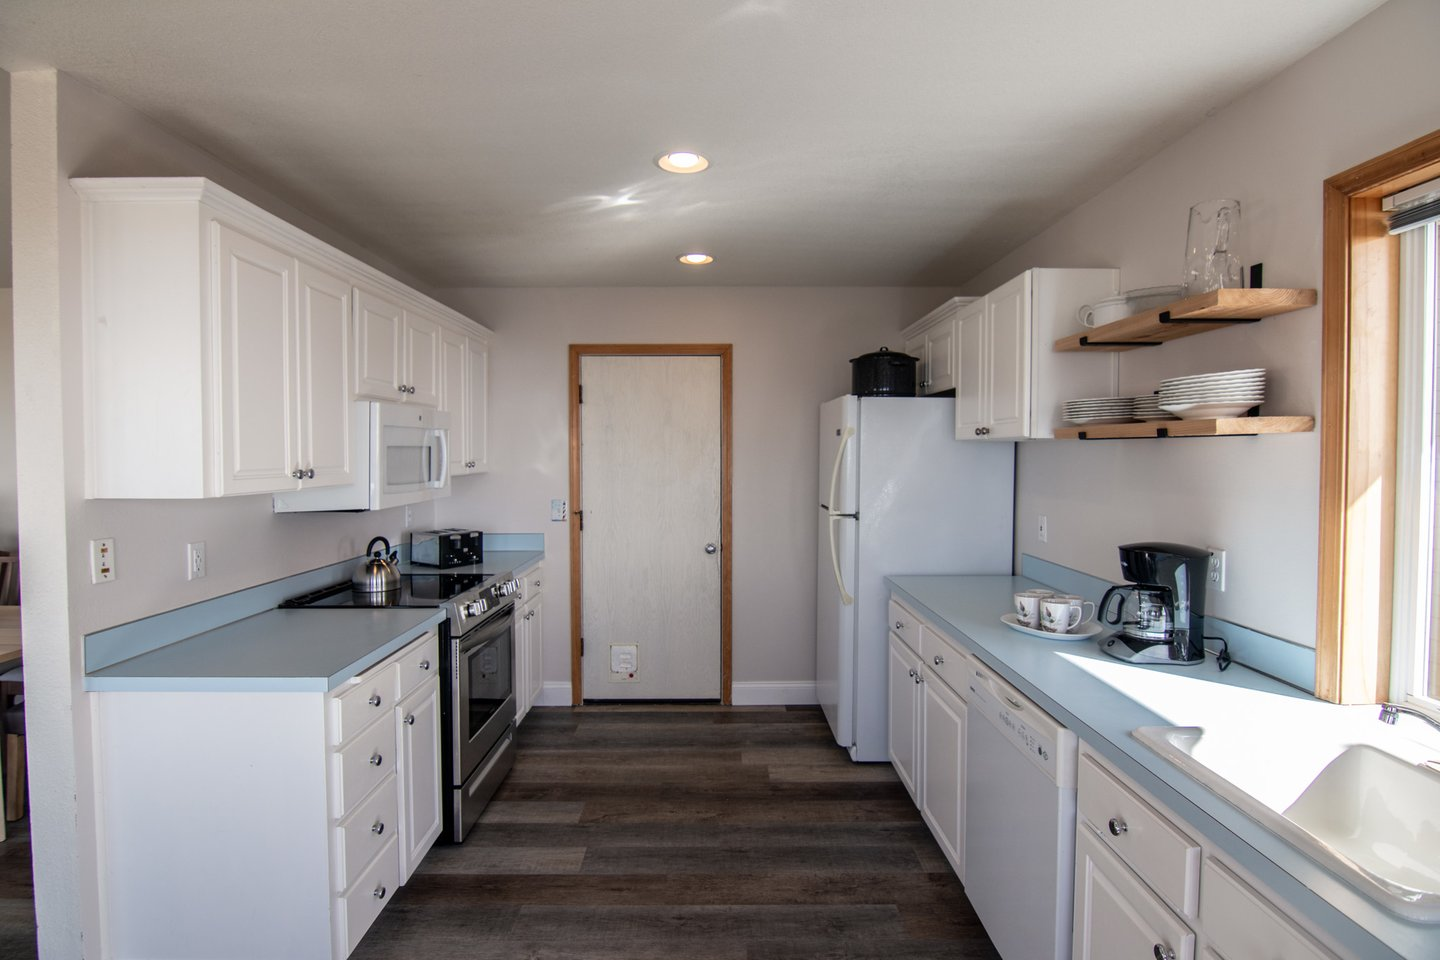 The family chef will love cooking dinner in the well-appointed kitchen.